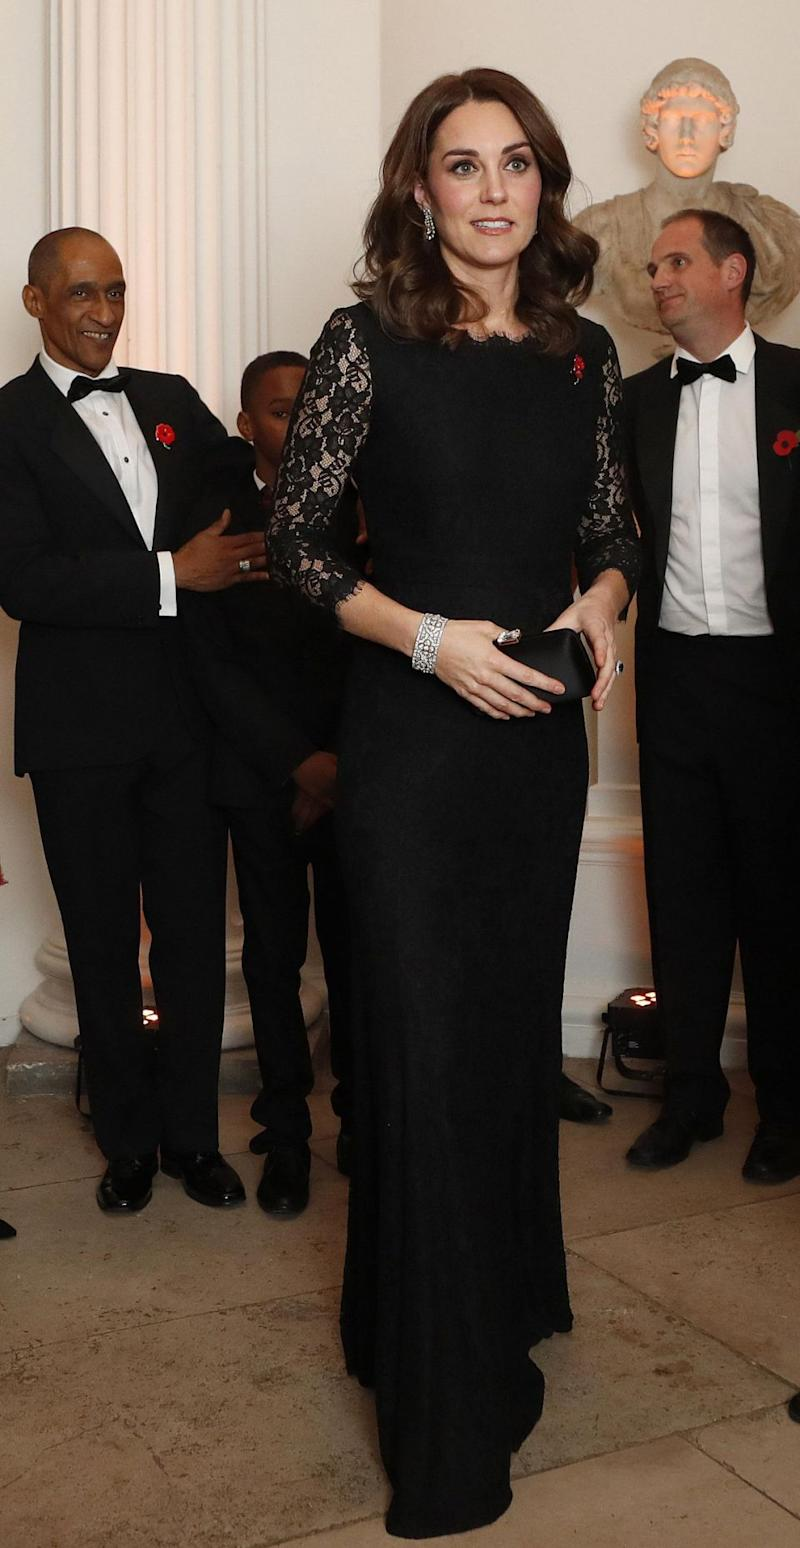 Kate Middleton stepped out in November at a gala for the Anna Freud National Centre for Children and Families charity. Photo: Getty Images